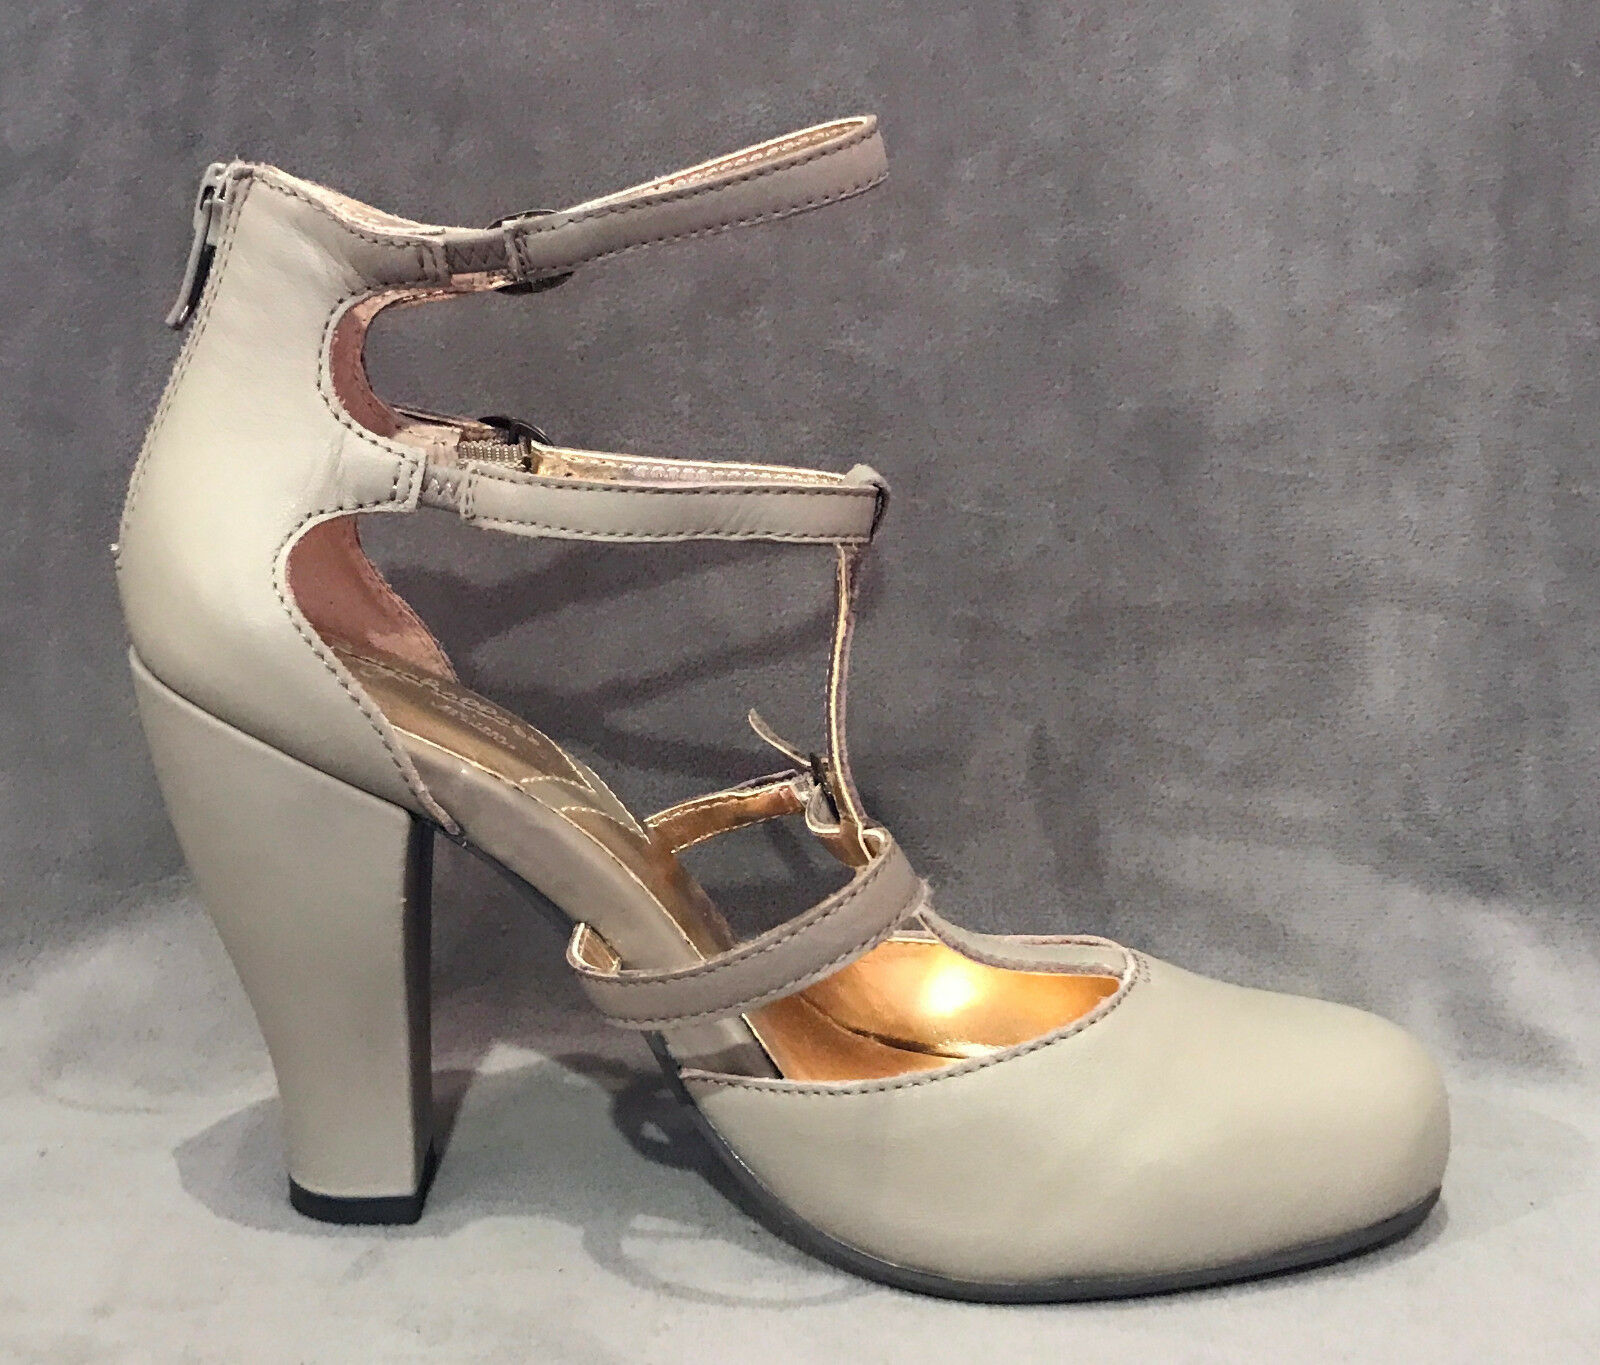 NEW ANTHROPOLOGIE ANTHROPOLOGIE NEW SEYCHELLES TAUPE STRAPPY HEELS PUMPS schuhe SZ 7 5ff04e